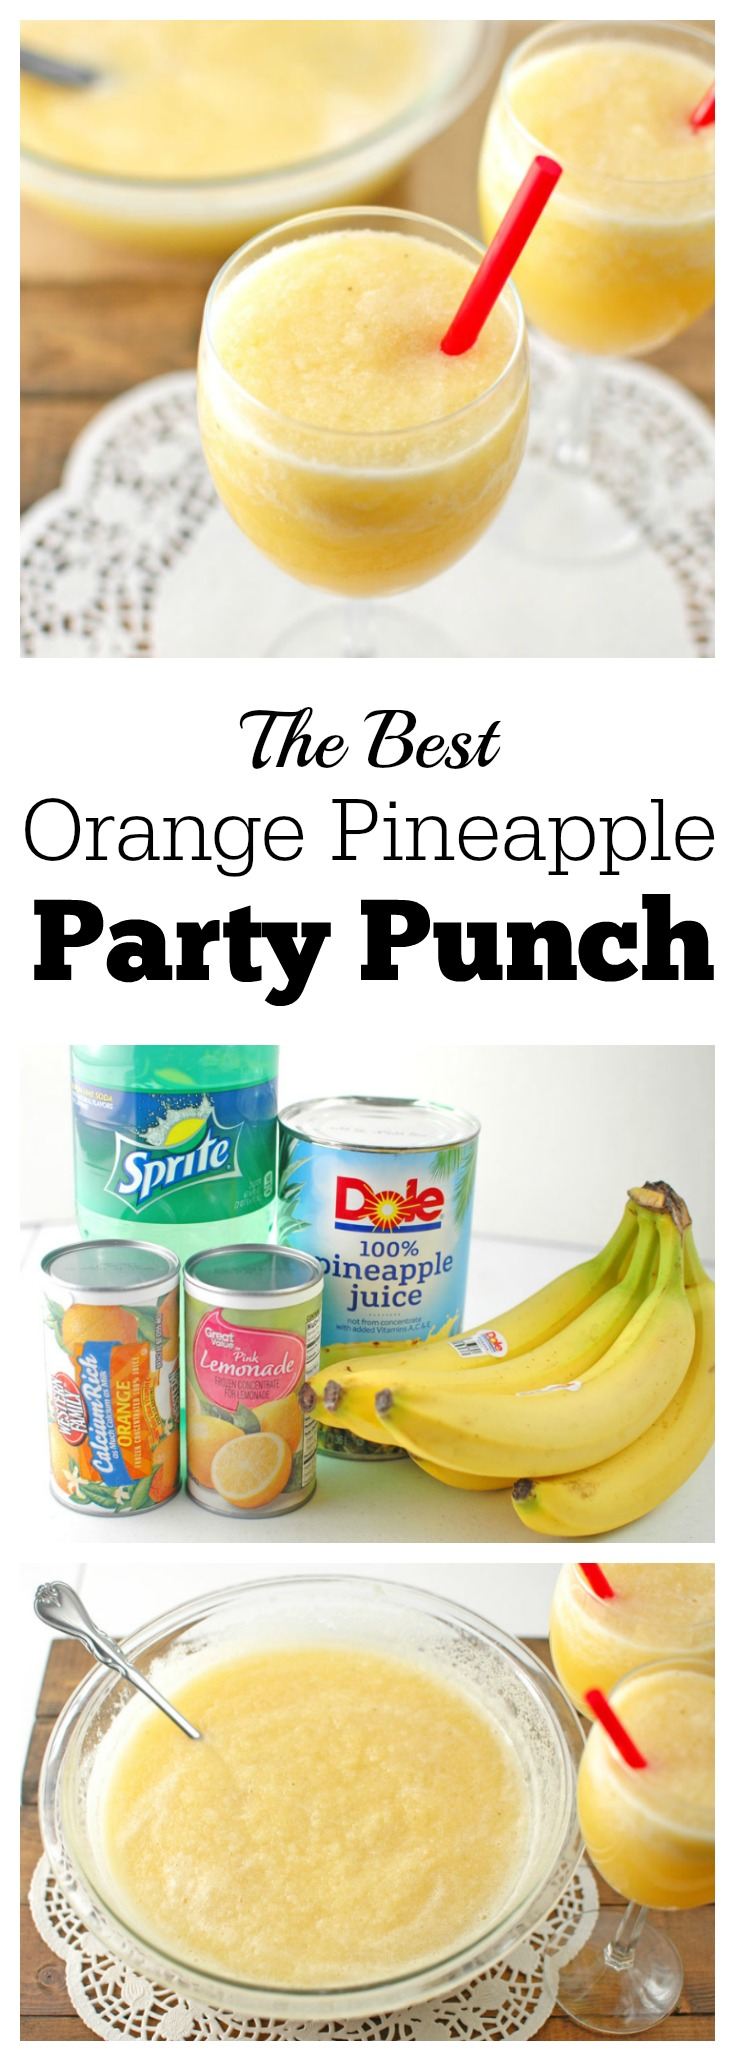 Orange Pineapple Party Punch